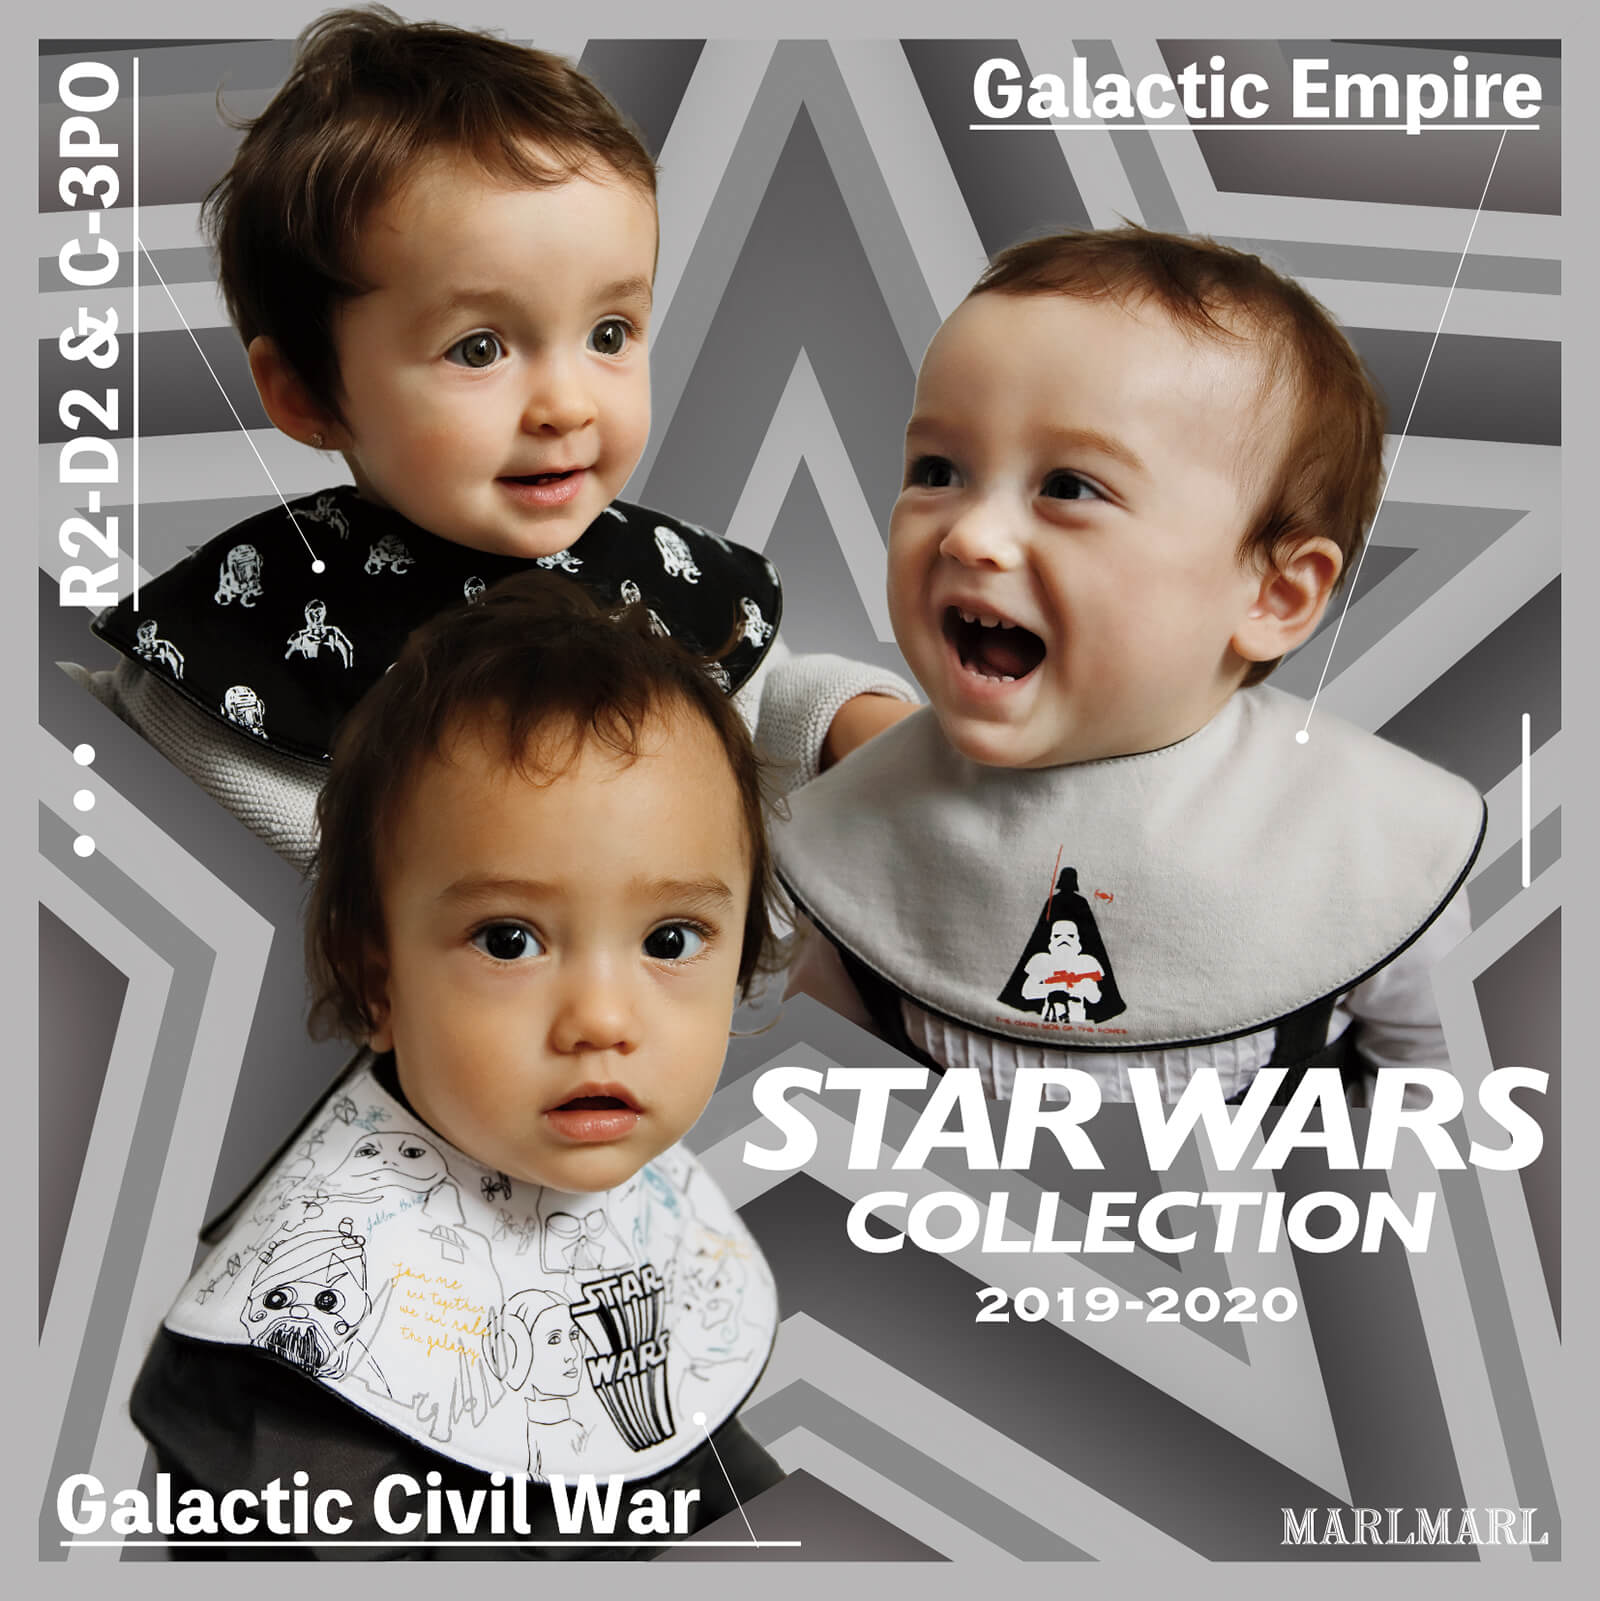 2019-2020 STAR WARS COLLECTION 11.20(WED.)